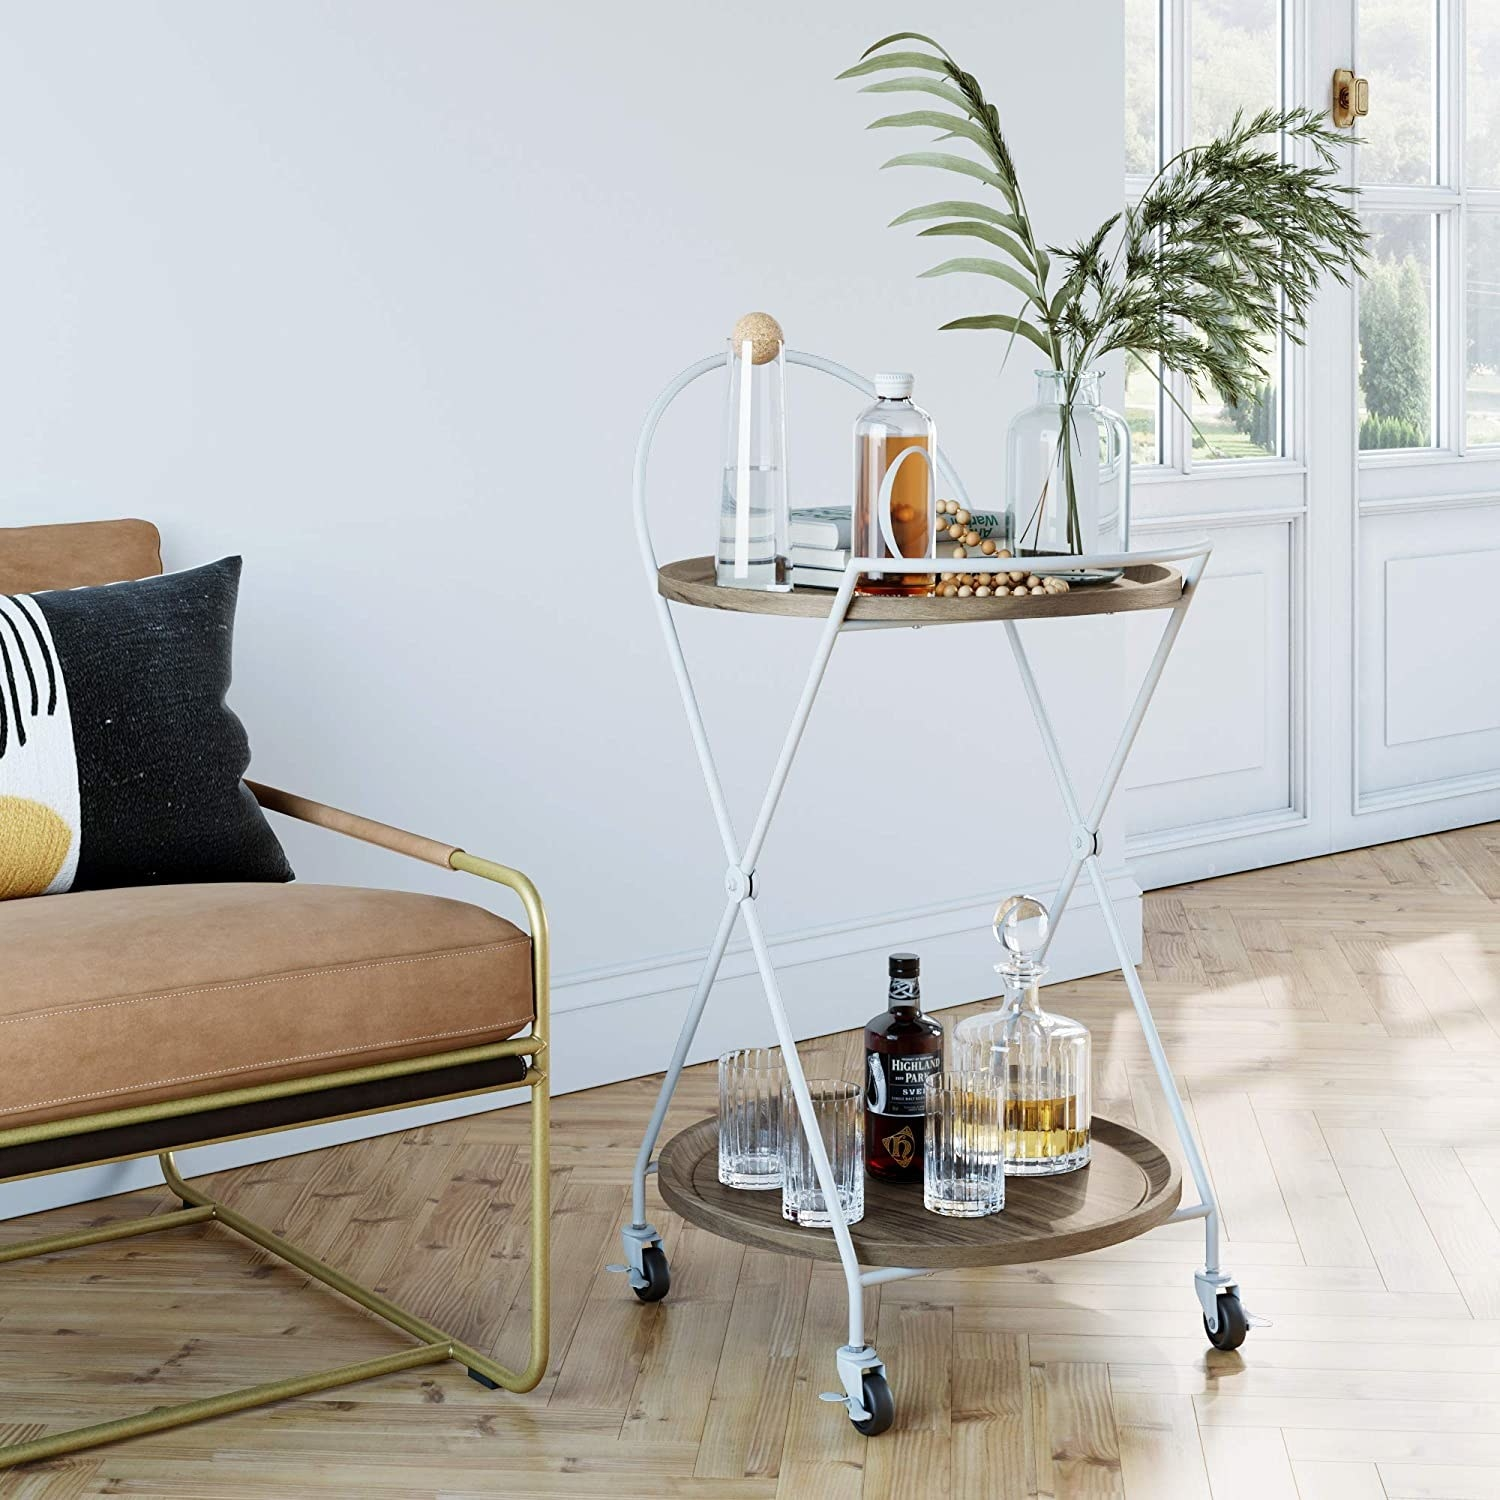 The bar cart in white with criss-cross legs and four wheels